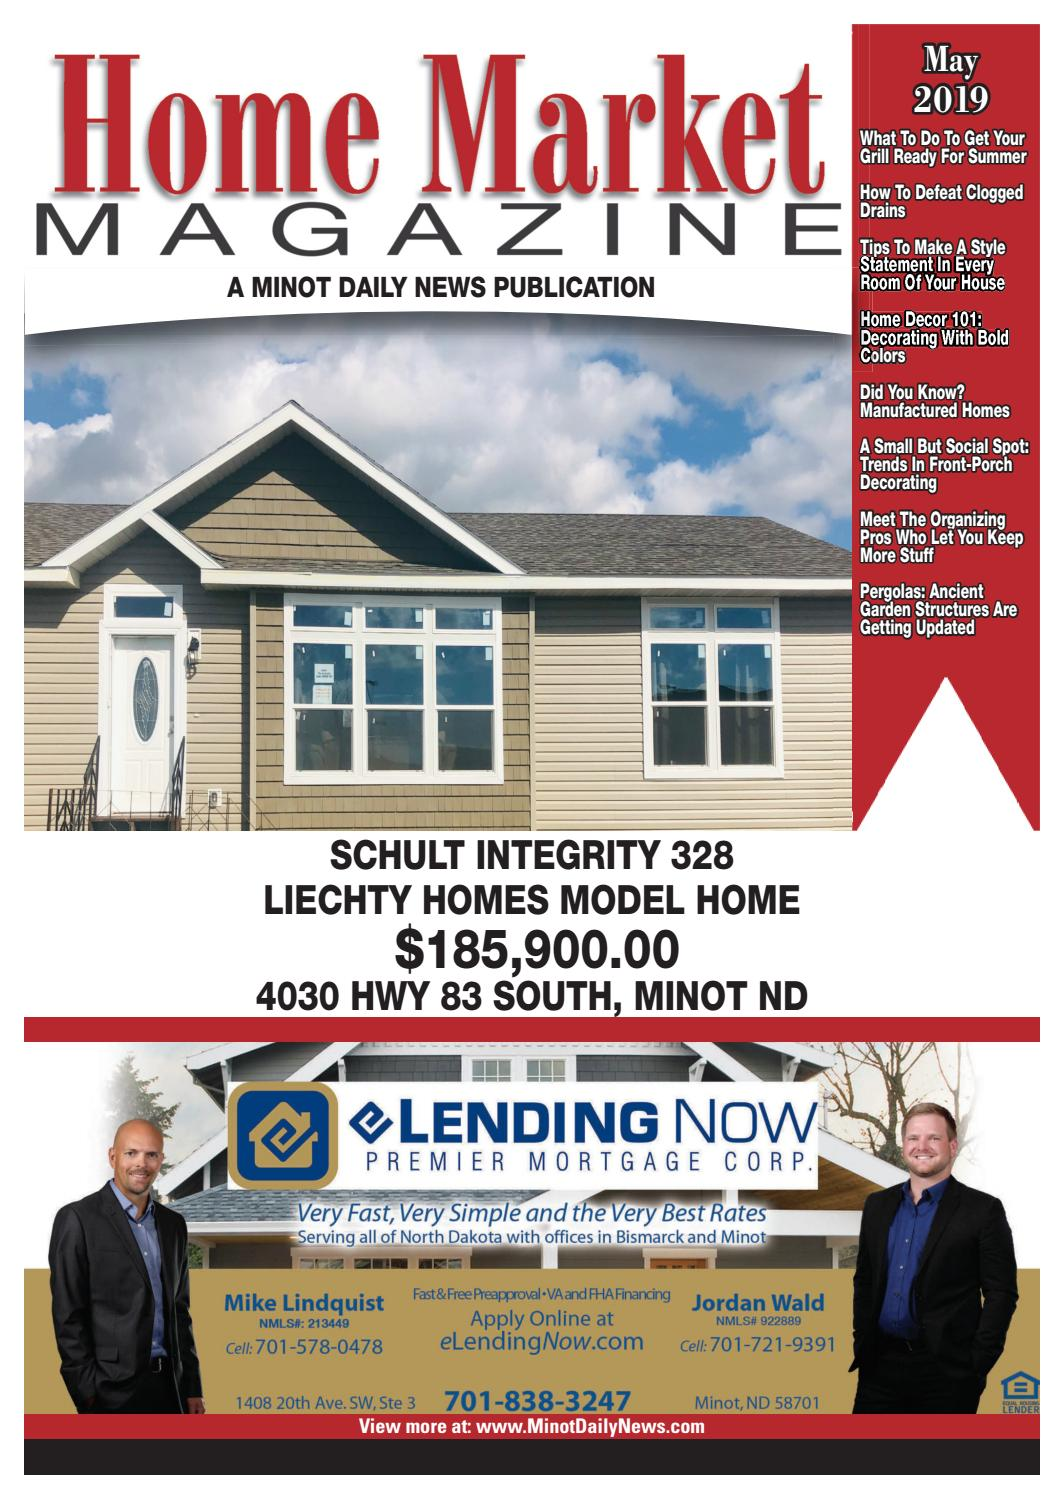 Home Market May 2019 By Minotdailynews Issuu